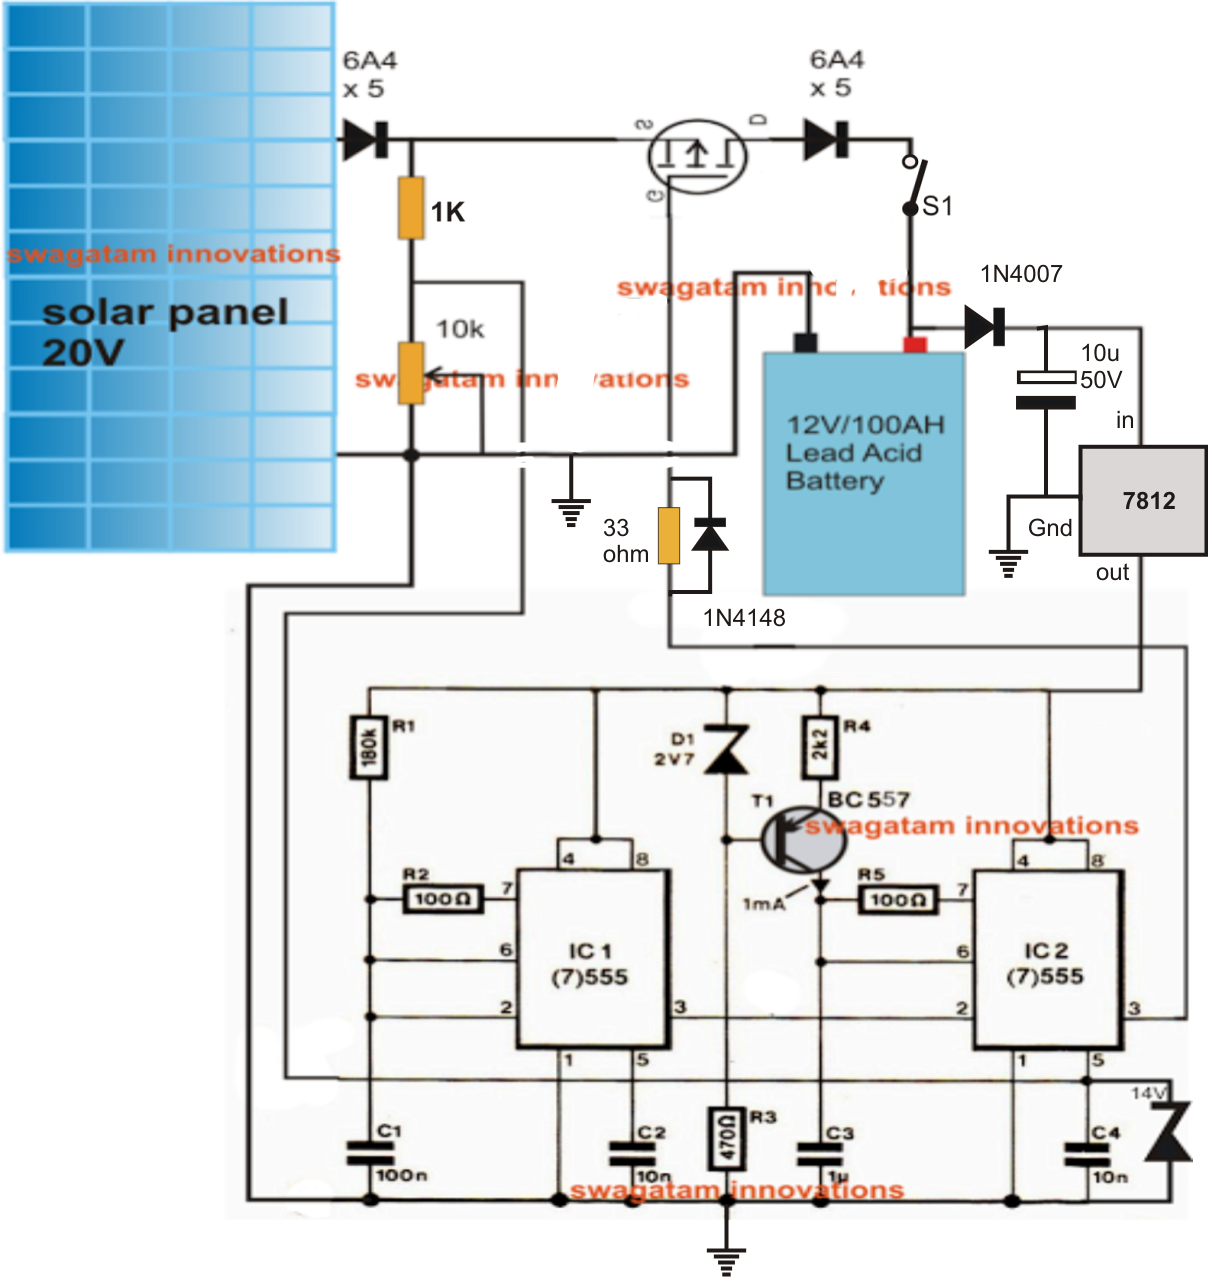 solar panel charge controller circuit diagram directional terms simple mppt part 1